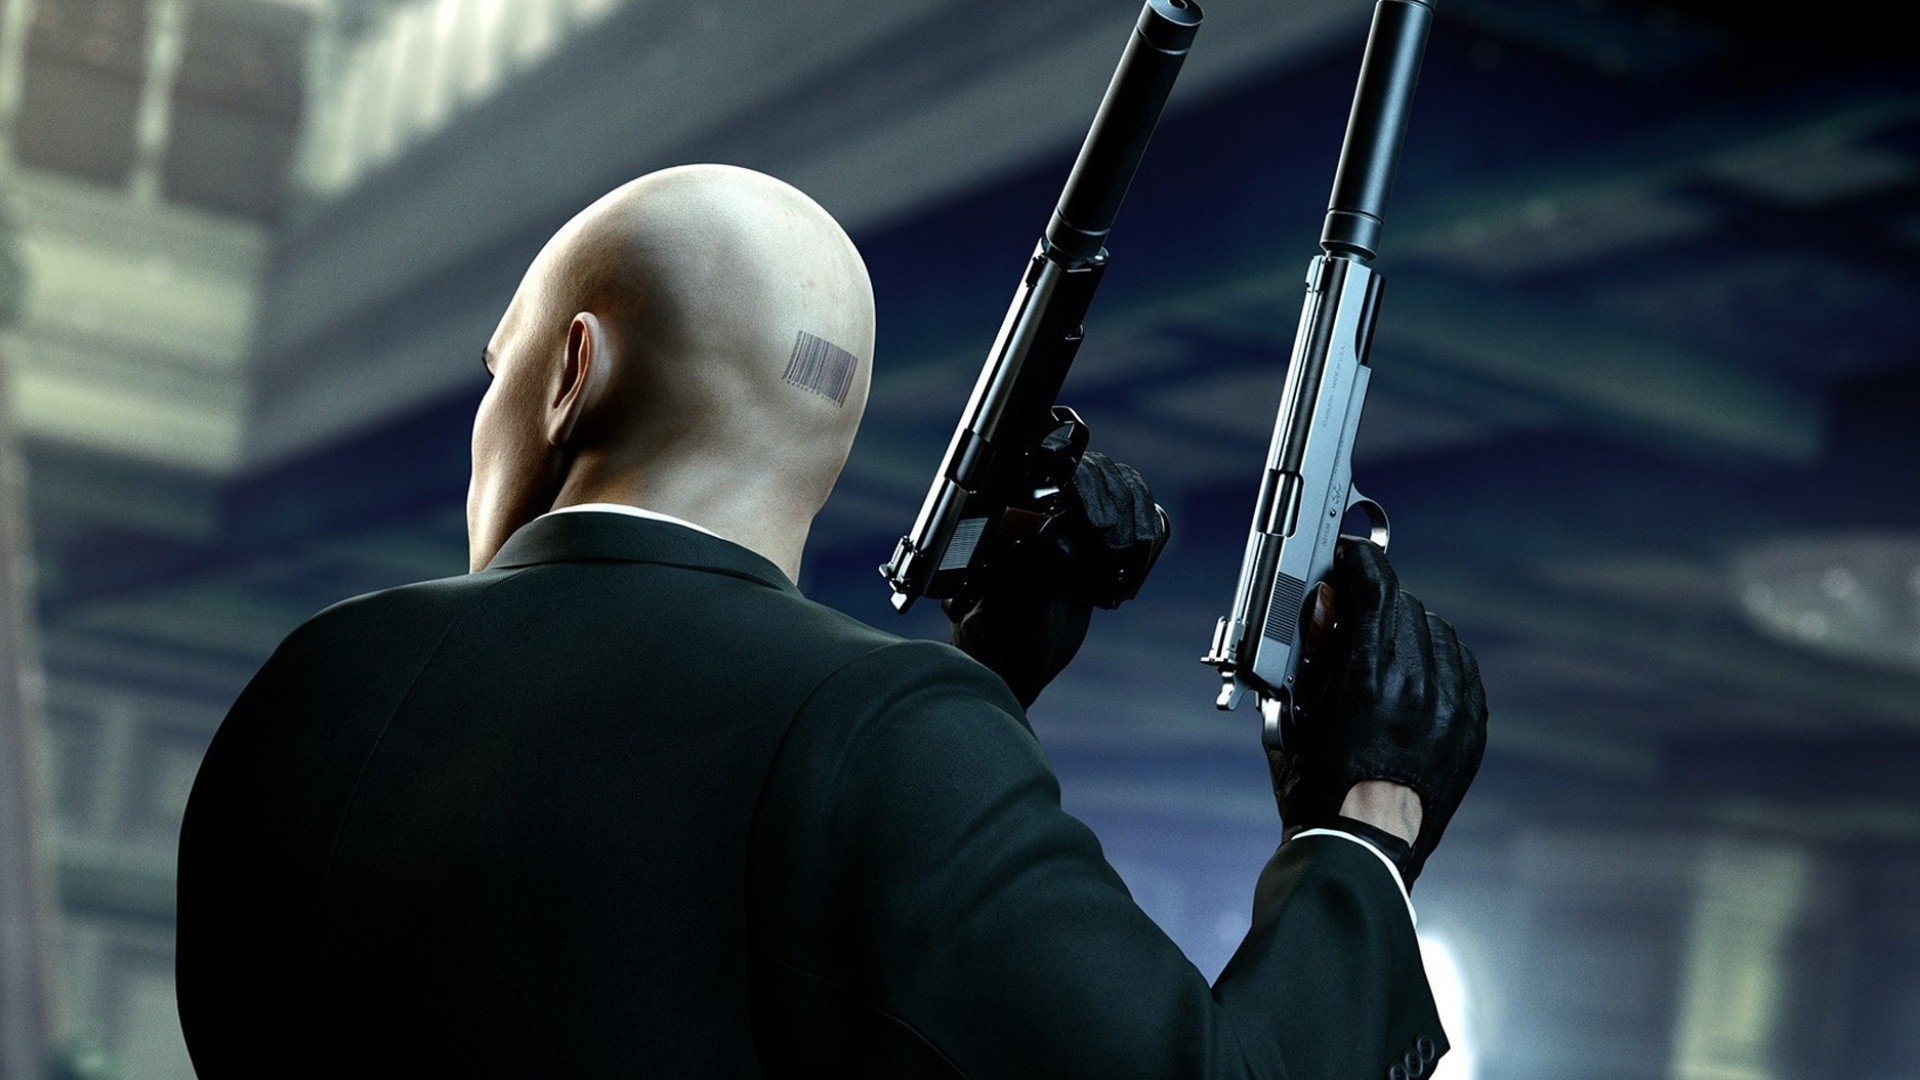 qS9S8BT09NXeU1mRASLGZVML2cT.jpg - Hitman: Absolution